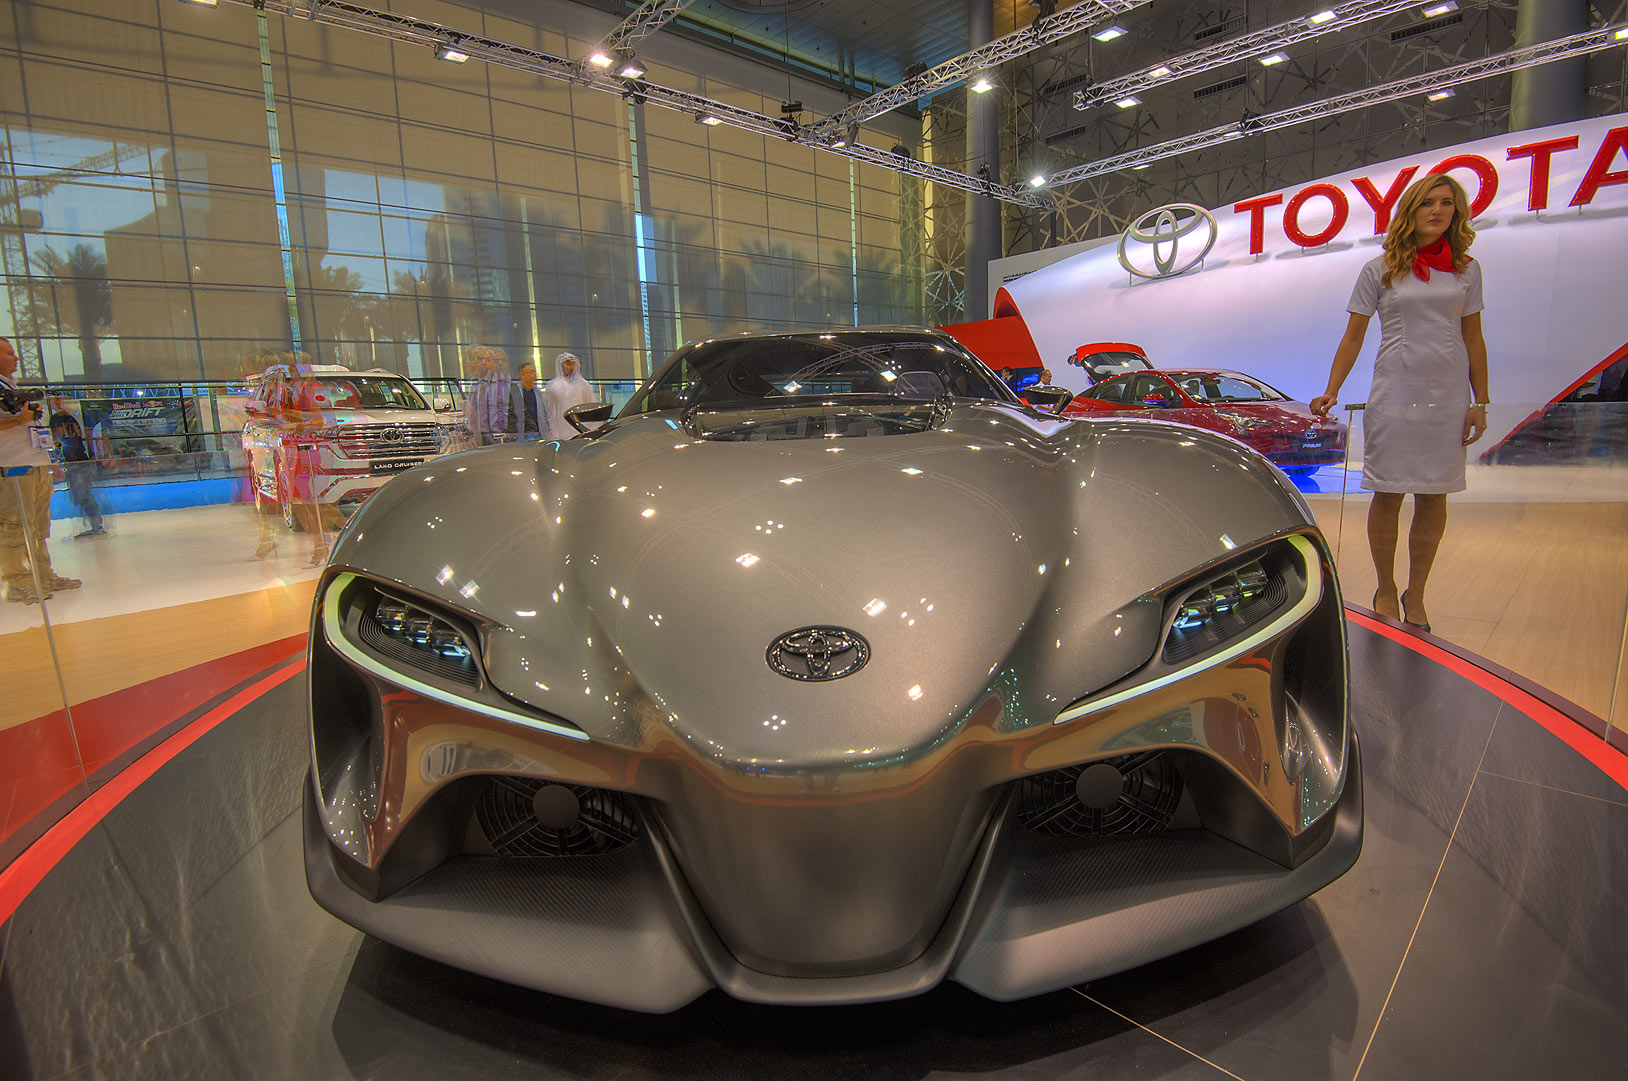 Front view of a silver Toyota car at a motor show...near City Center mall. Doha, Qatar